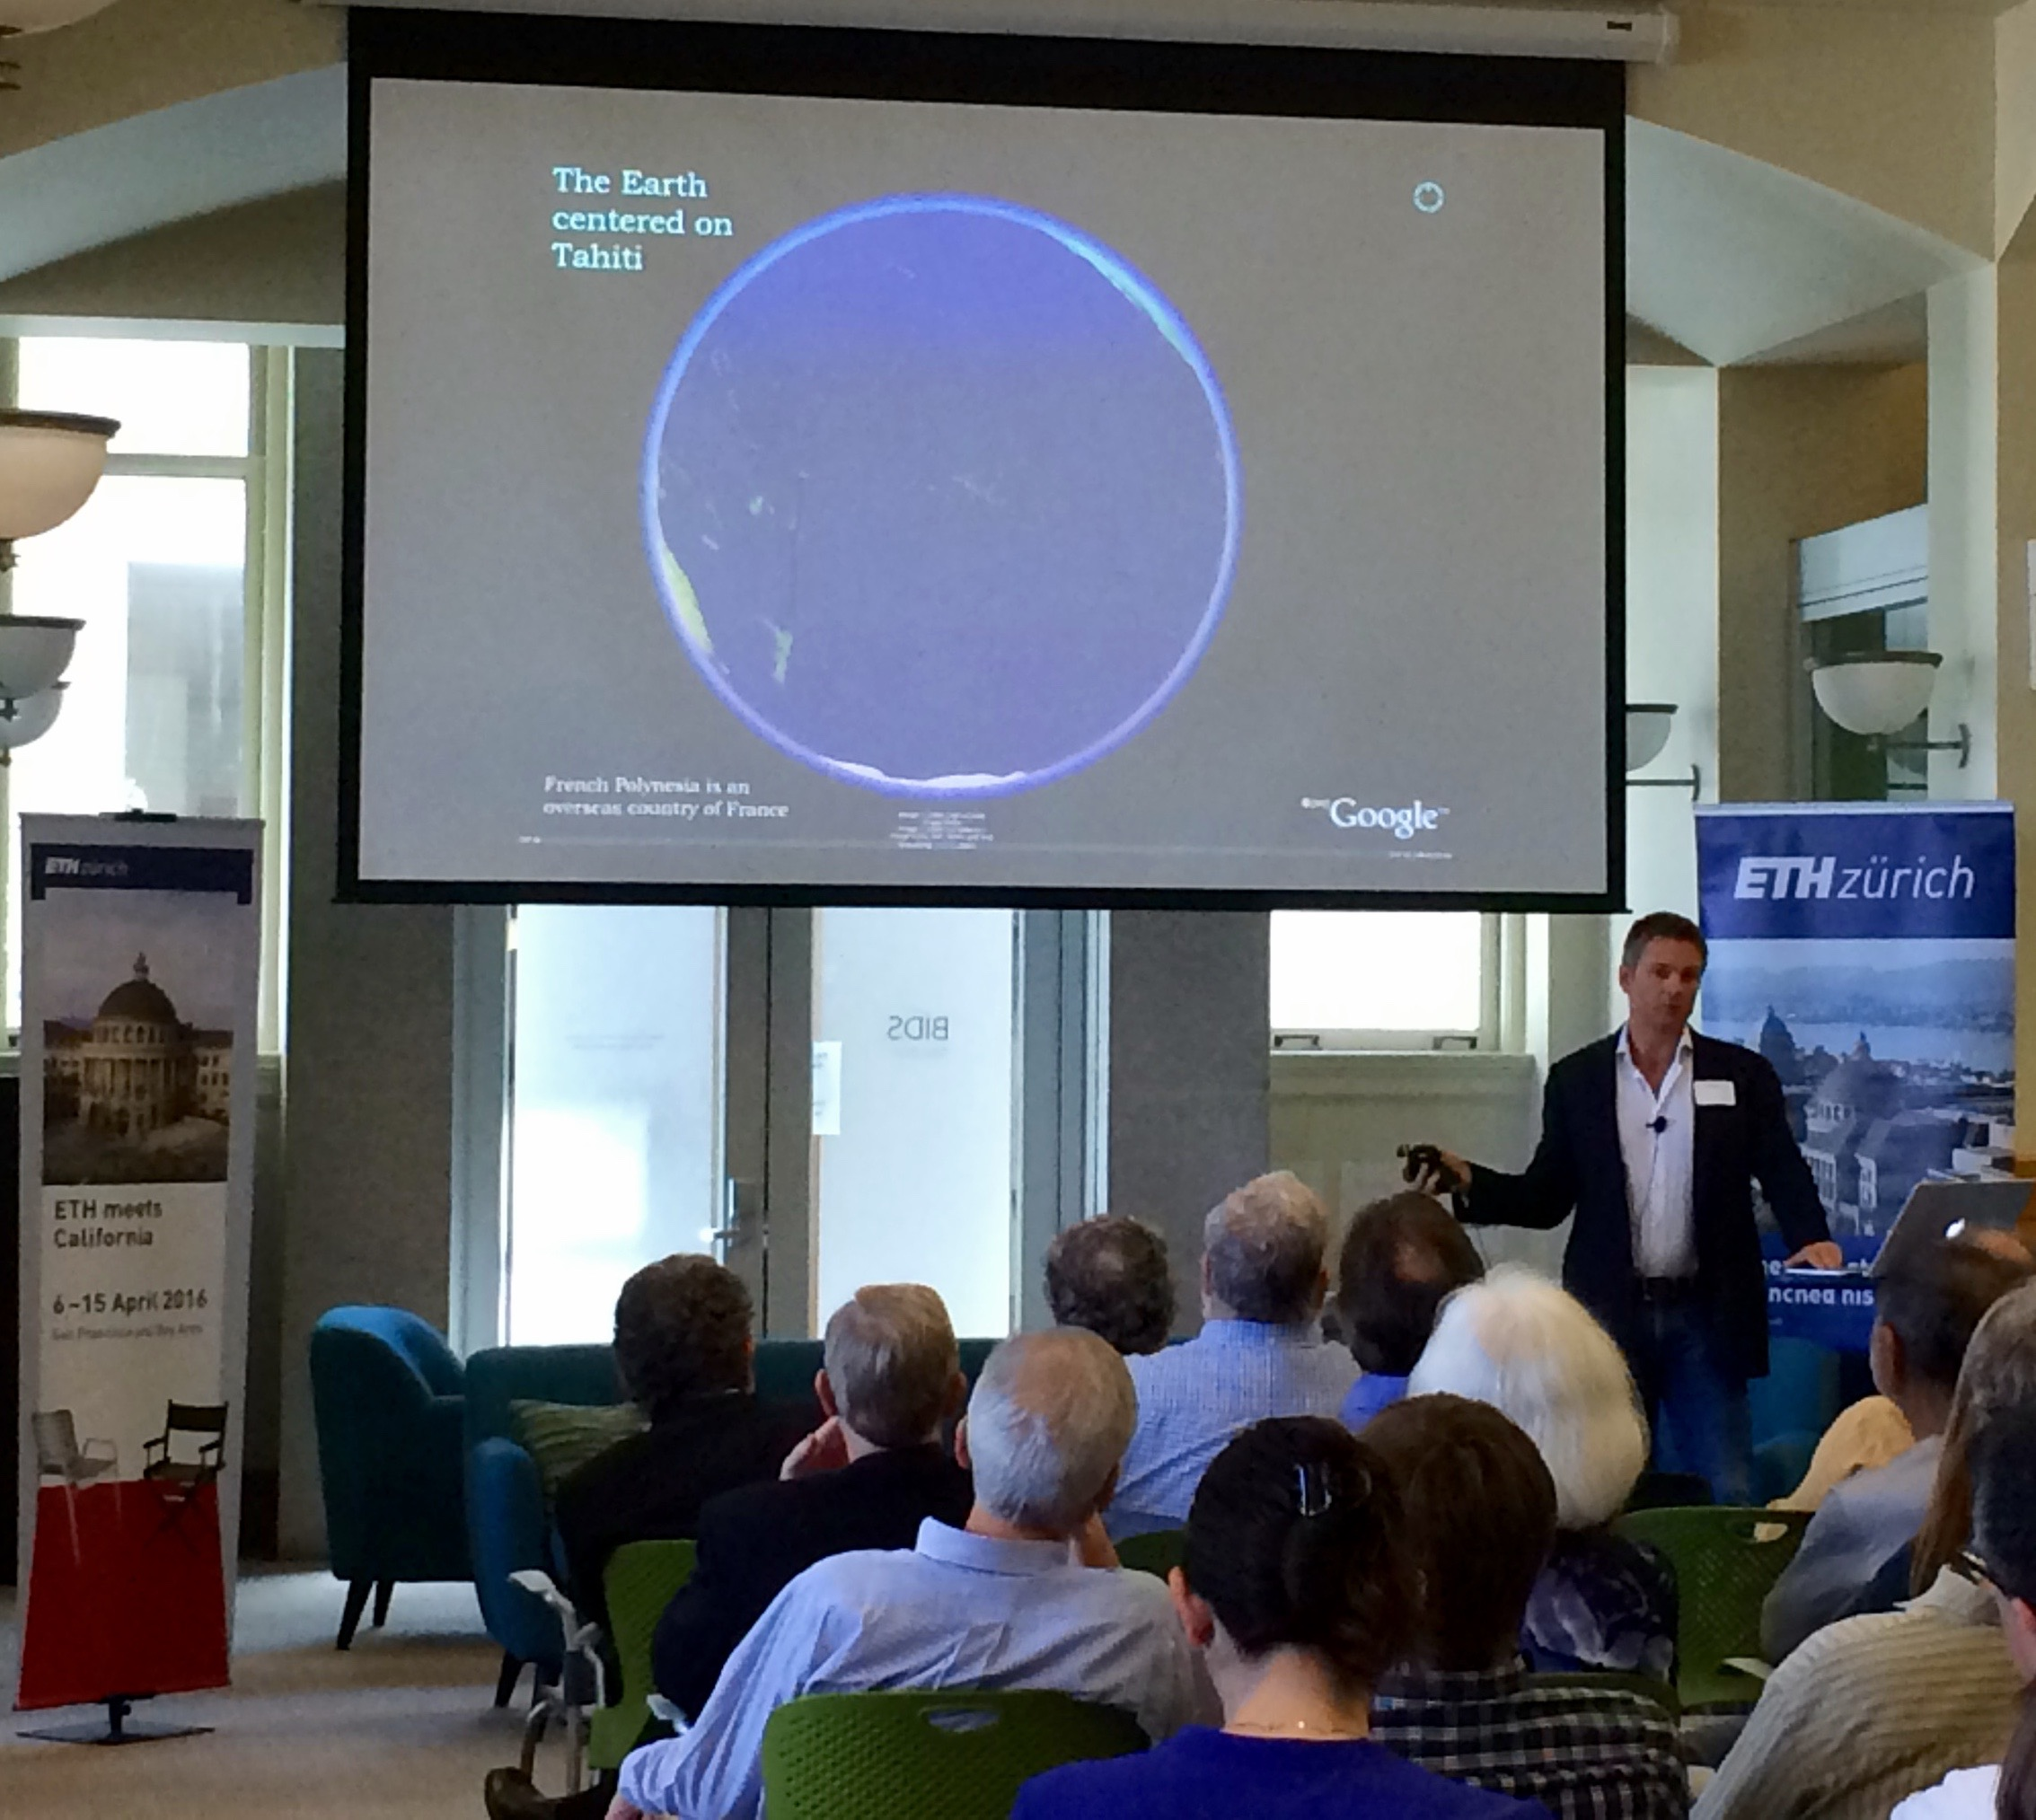 Dr. Neil Davies, Executive Director of the UC Berkeley Gump Station presenting the Moorea IDEA project at BIDS - Berkeley Institute for Data Science.